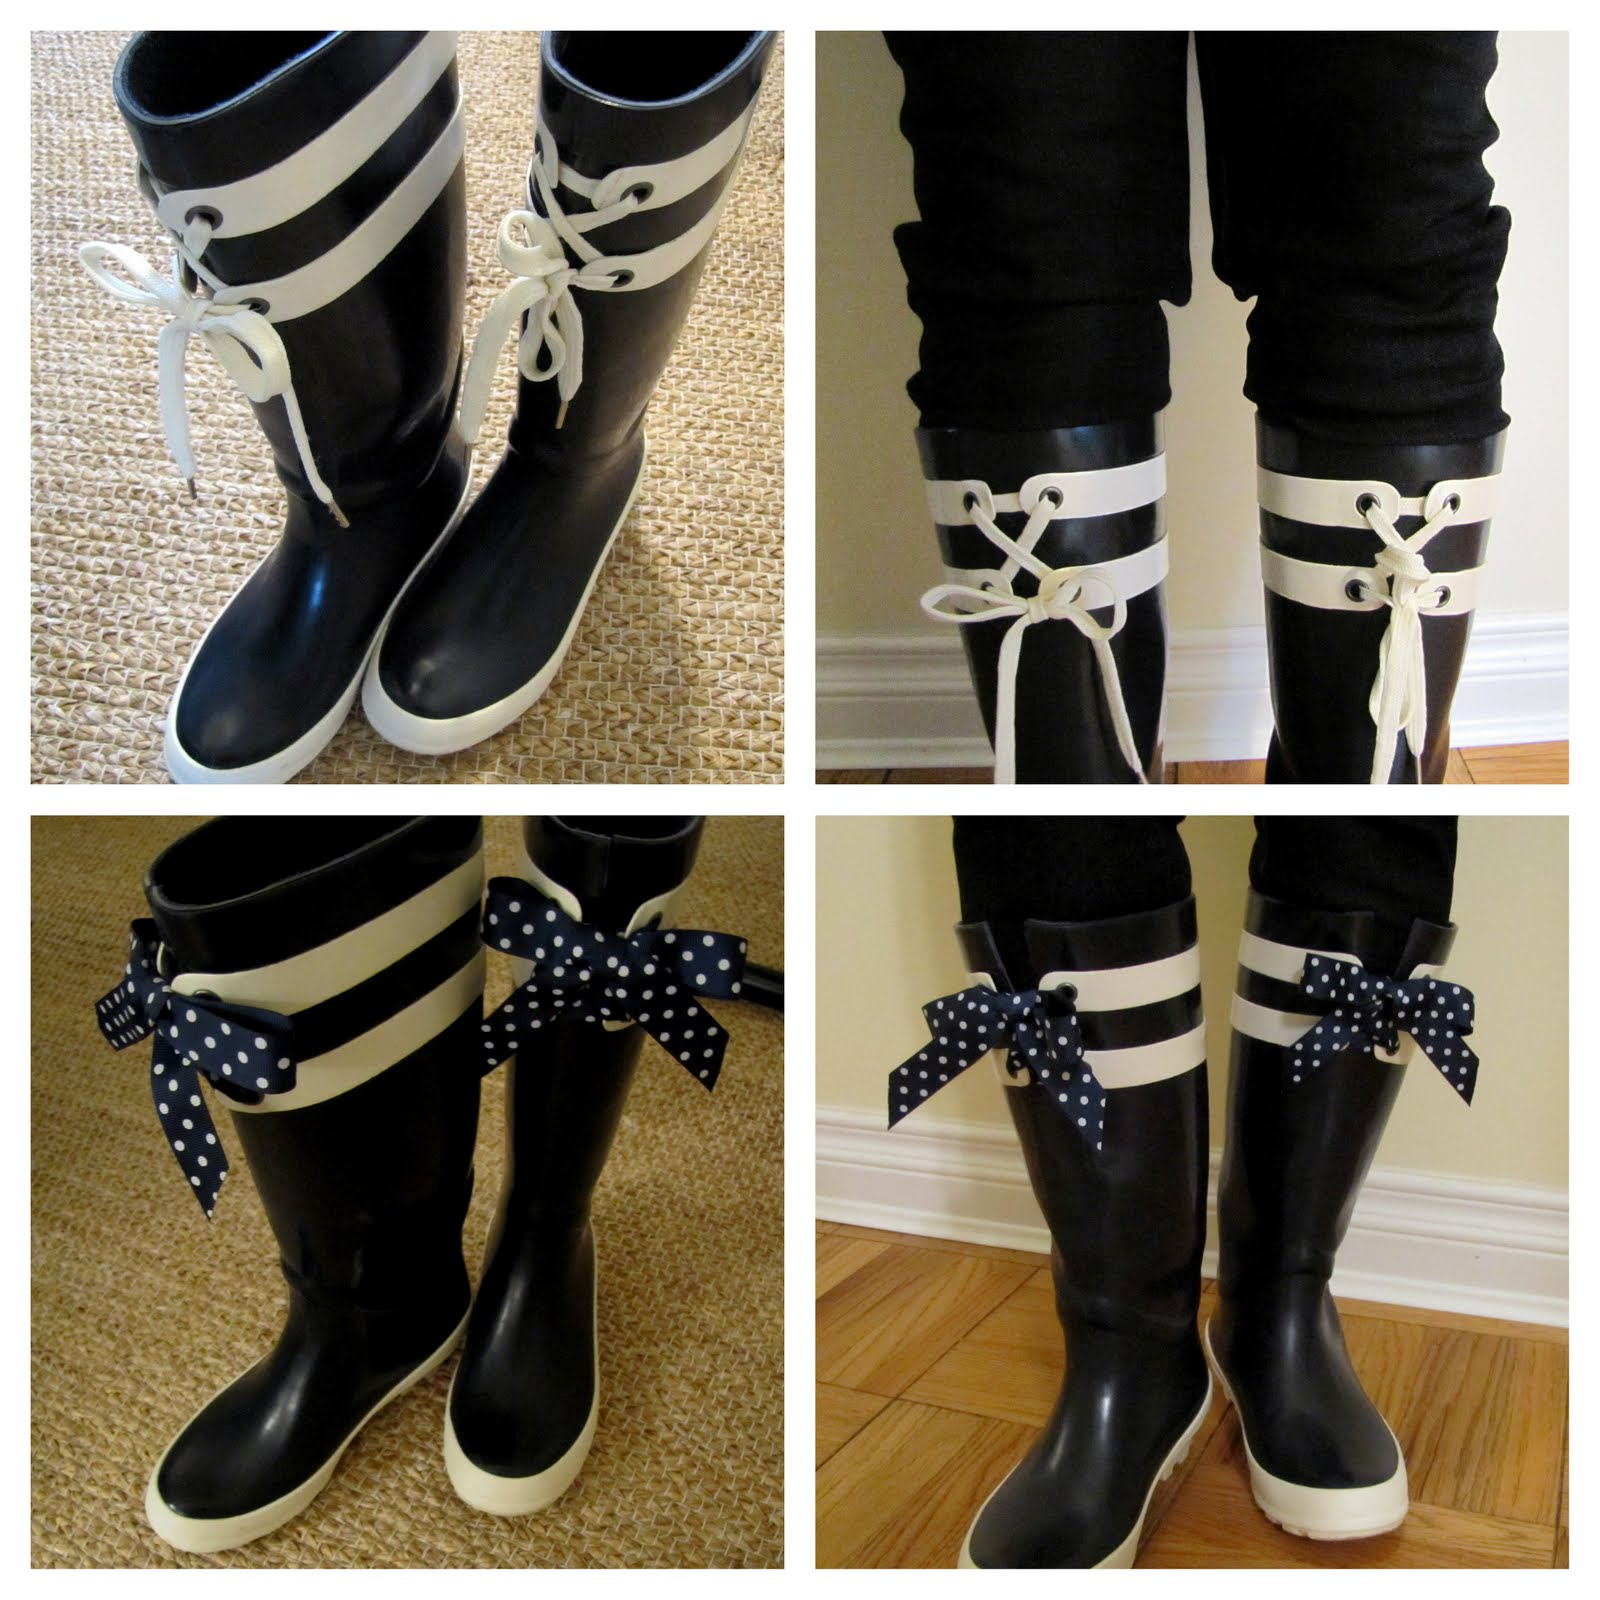 DIY, rubber boots, rain boots, refashion,